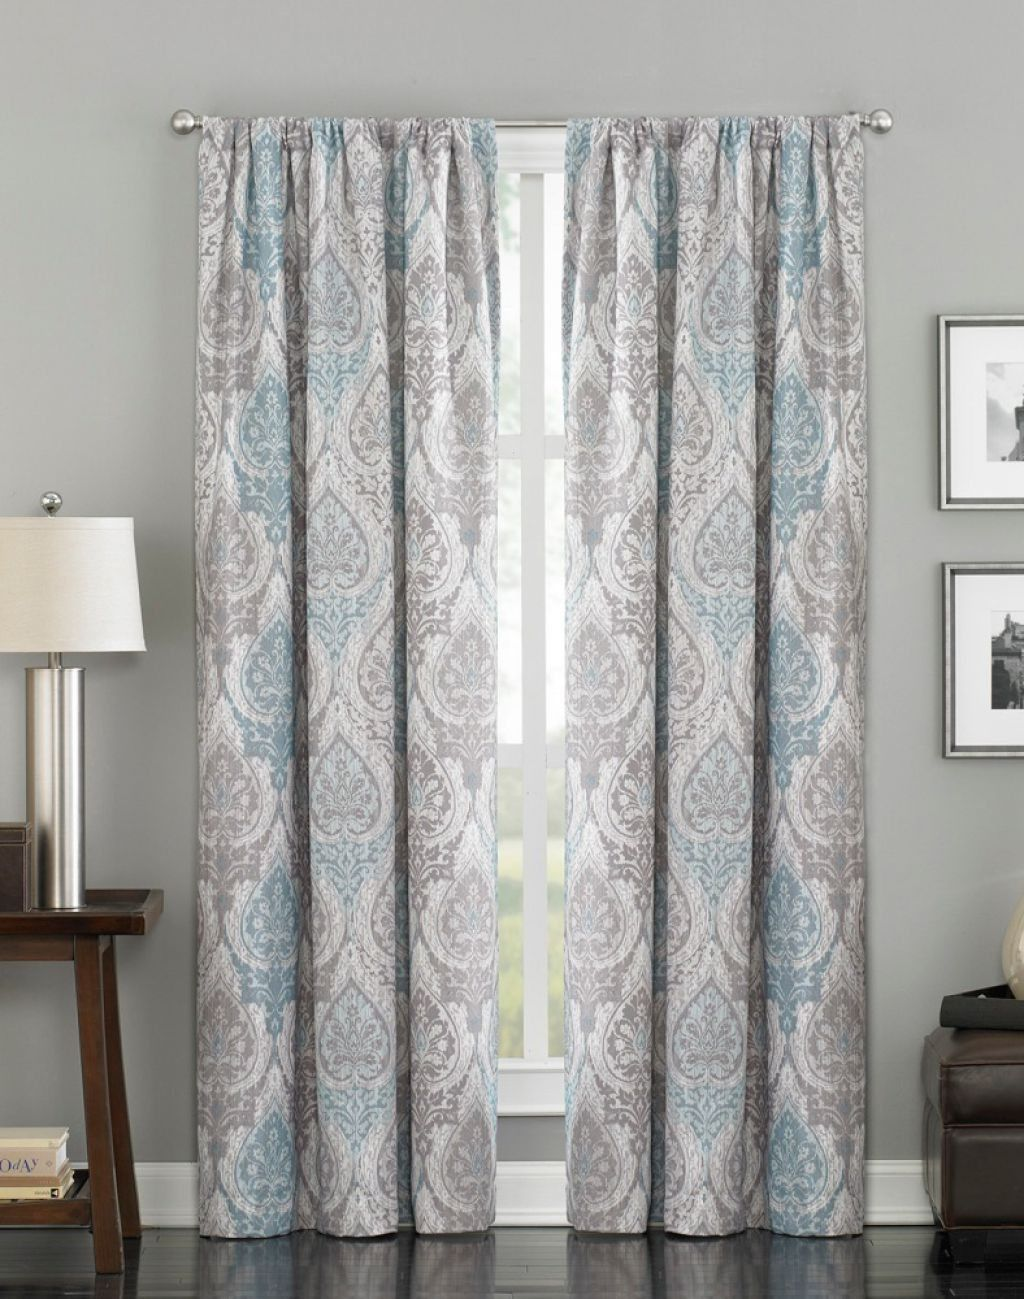 me damask unique for stores near com new idea curtains amp cambodiagateway curtain grey drapes of furniture